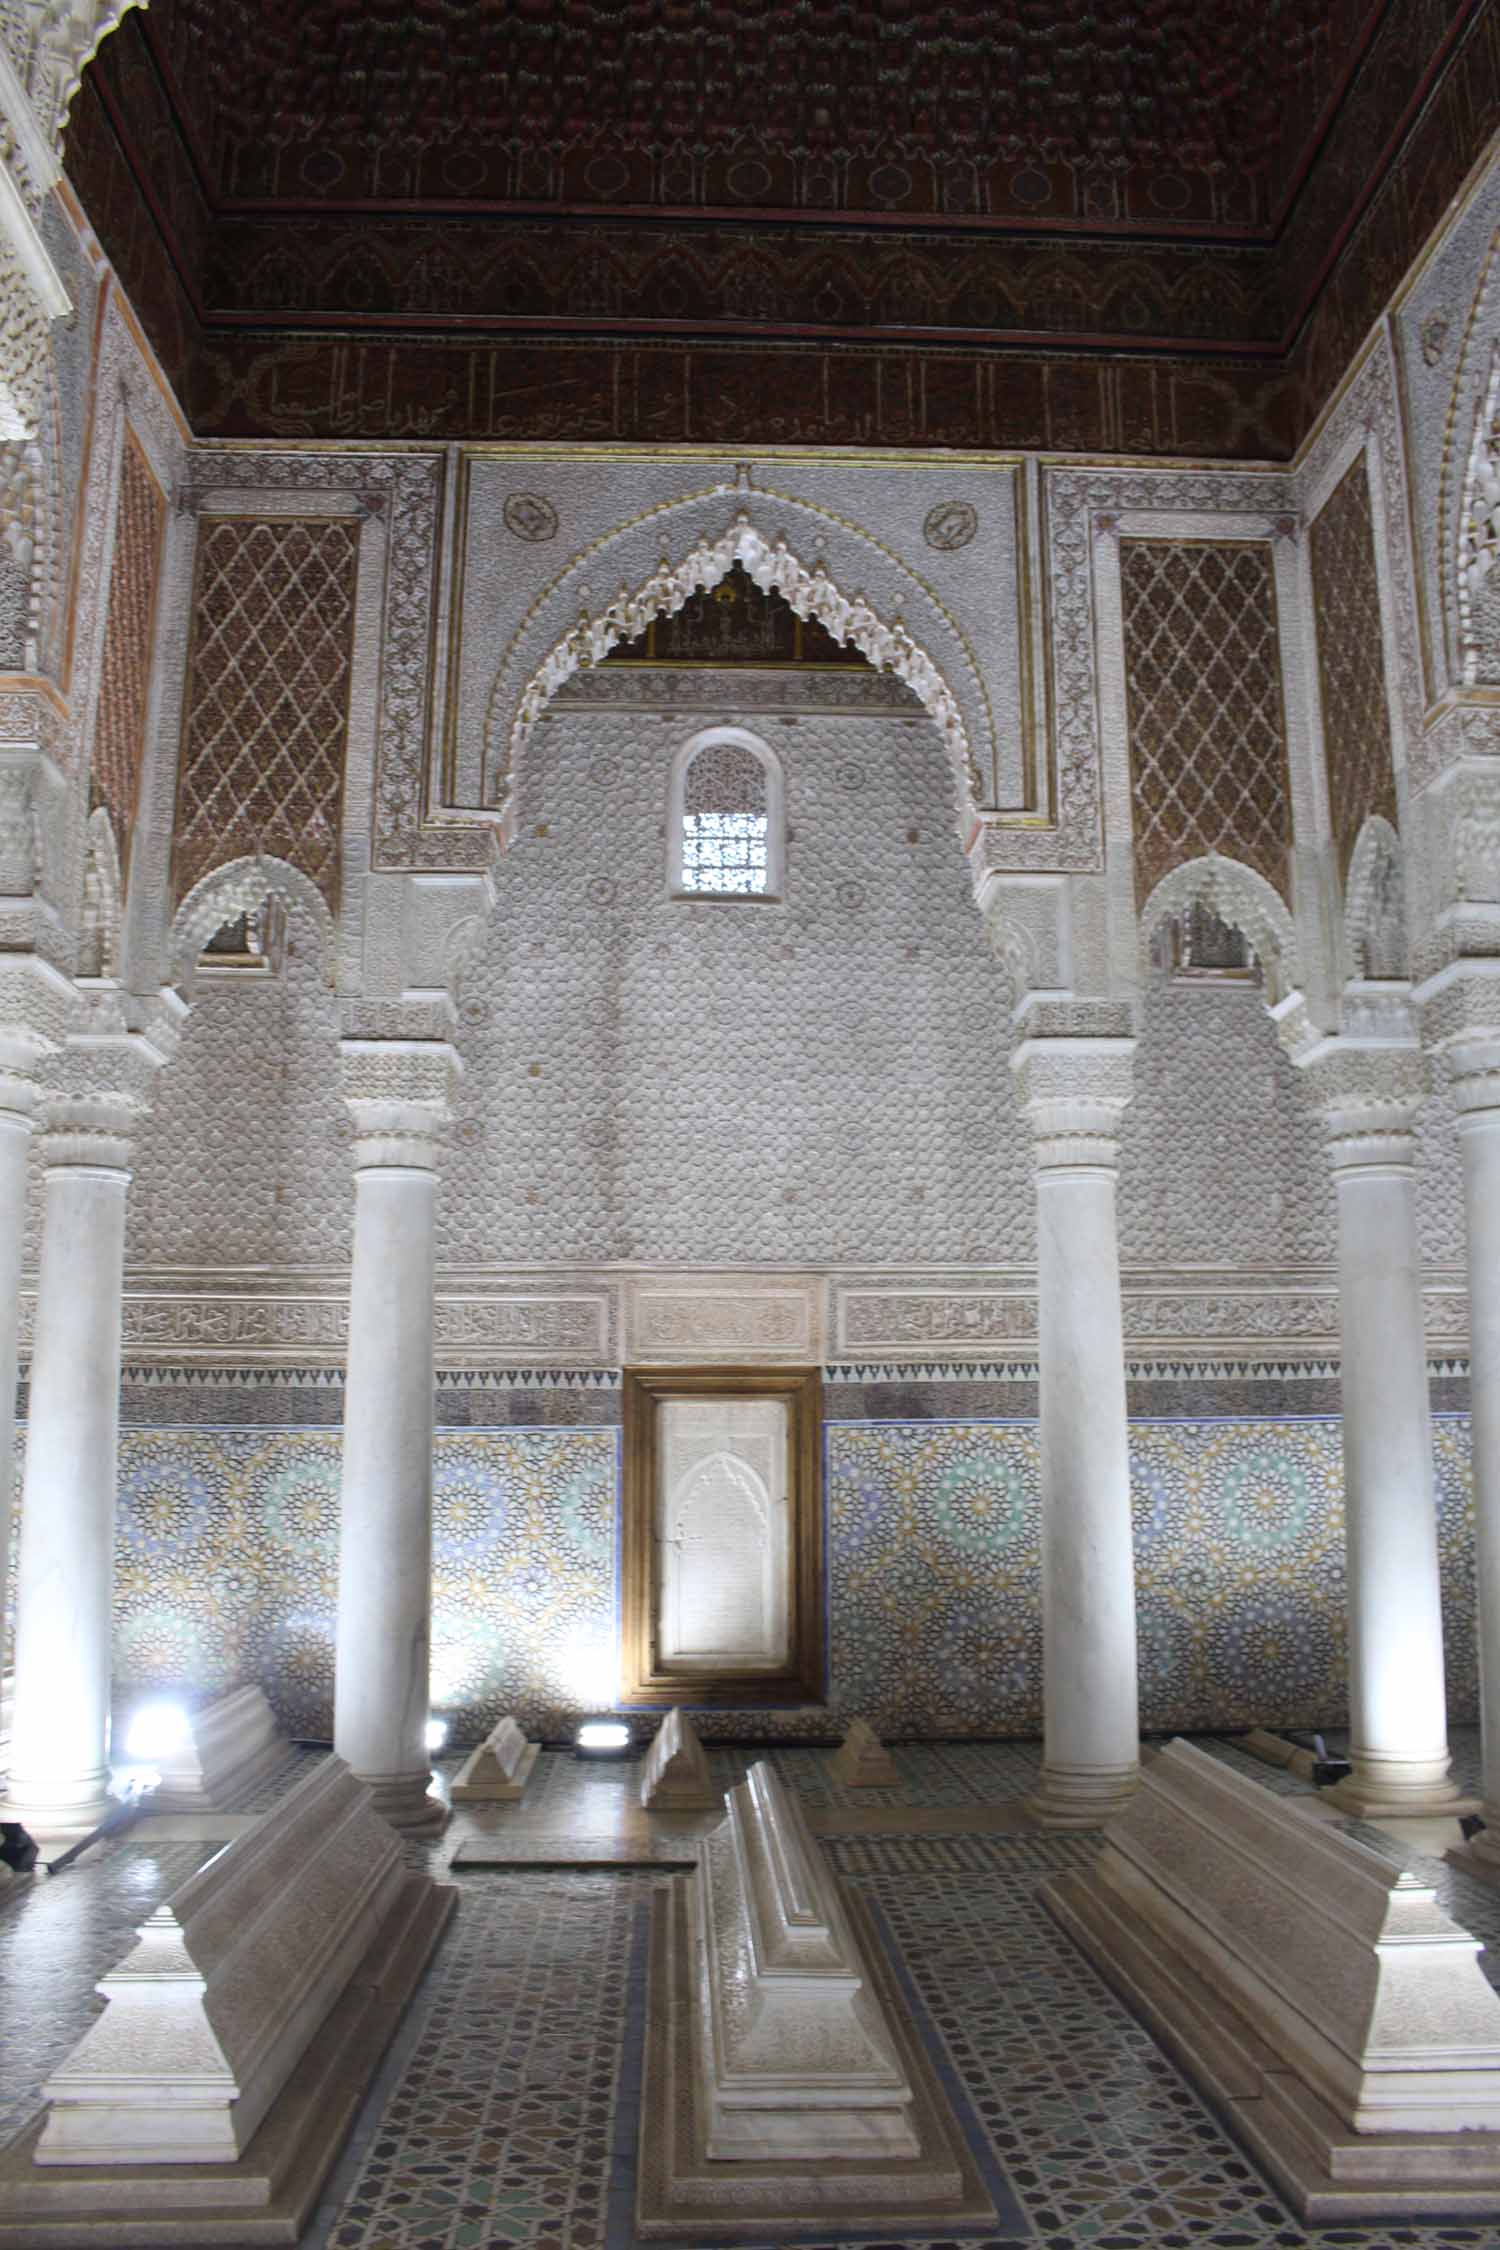 Marrakesh, Saadian tombs